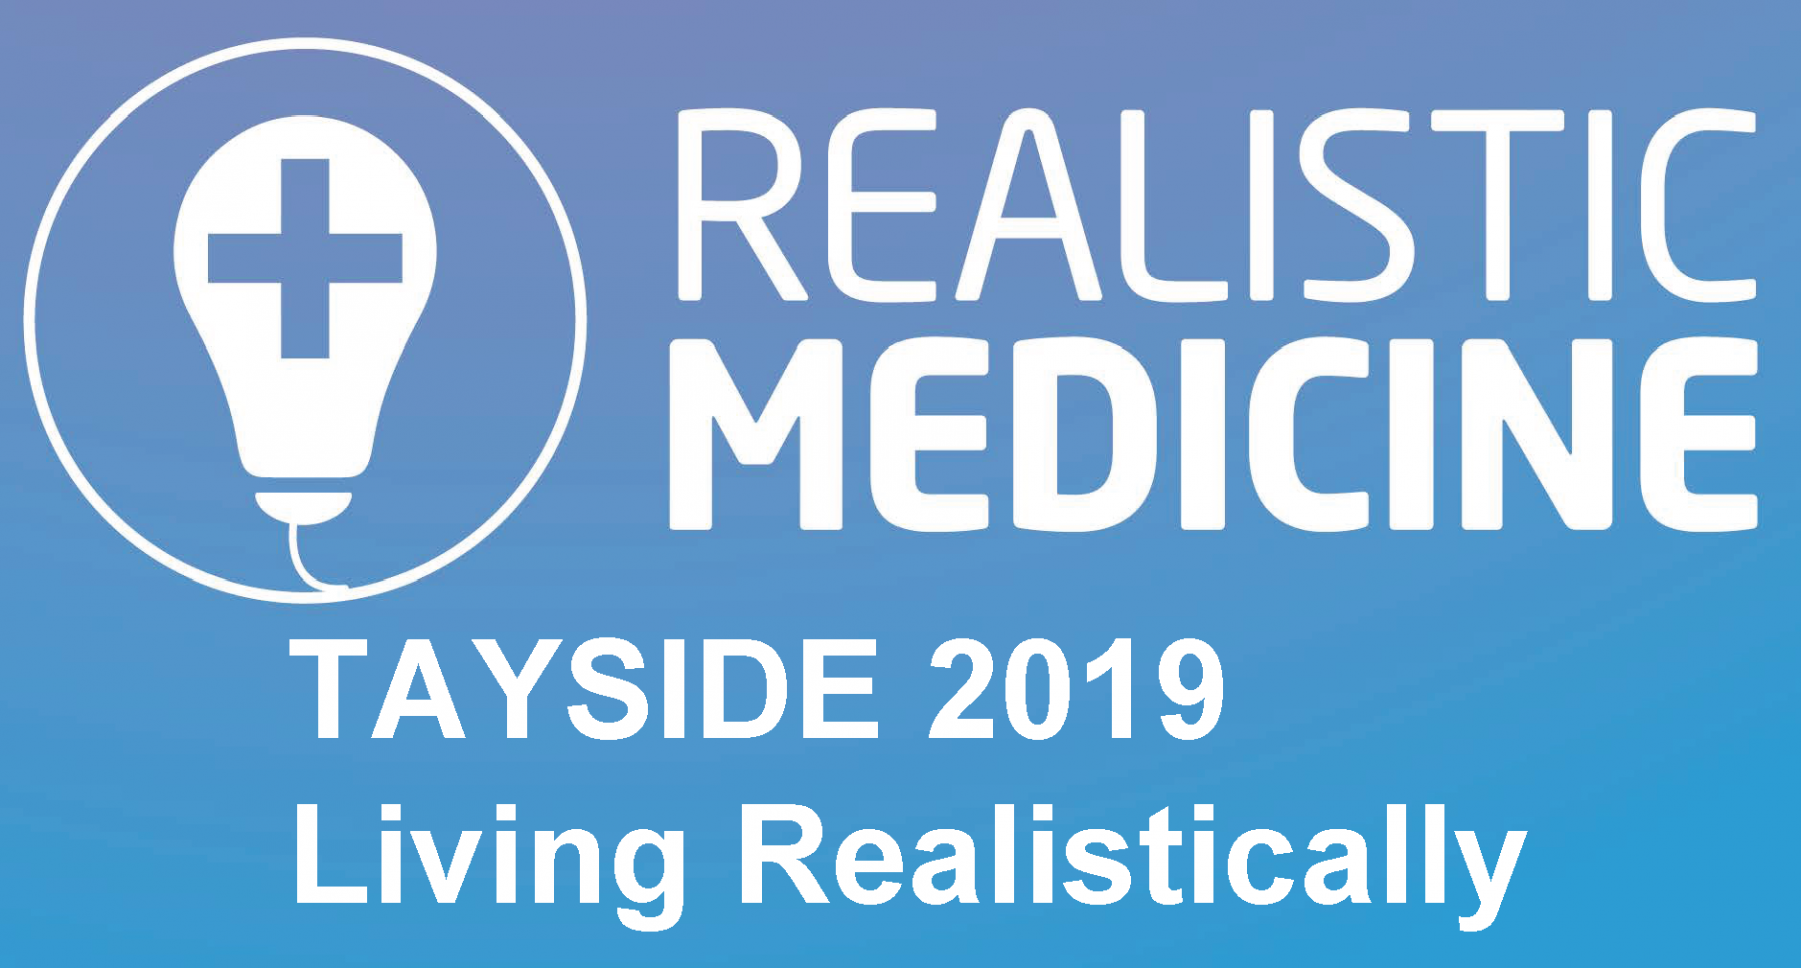 Living Realistically Event in Tayside May 2019